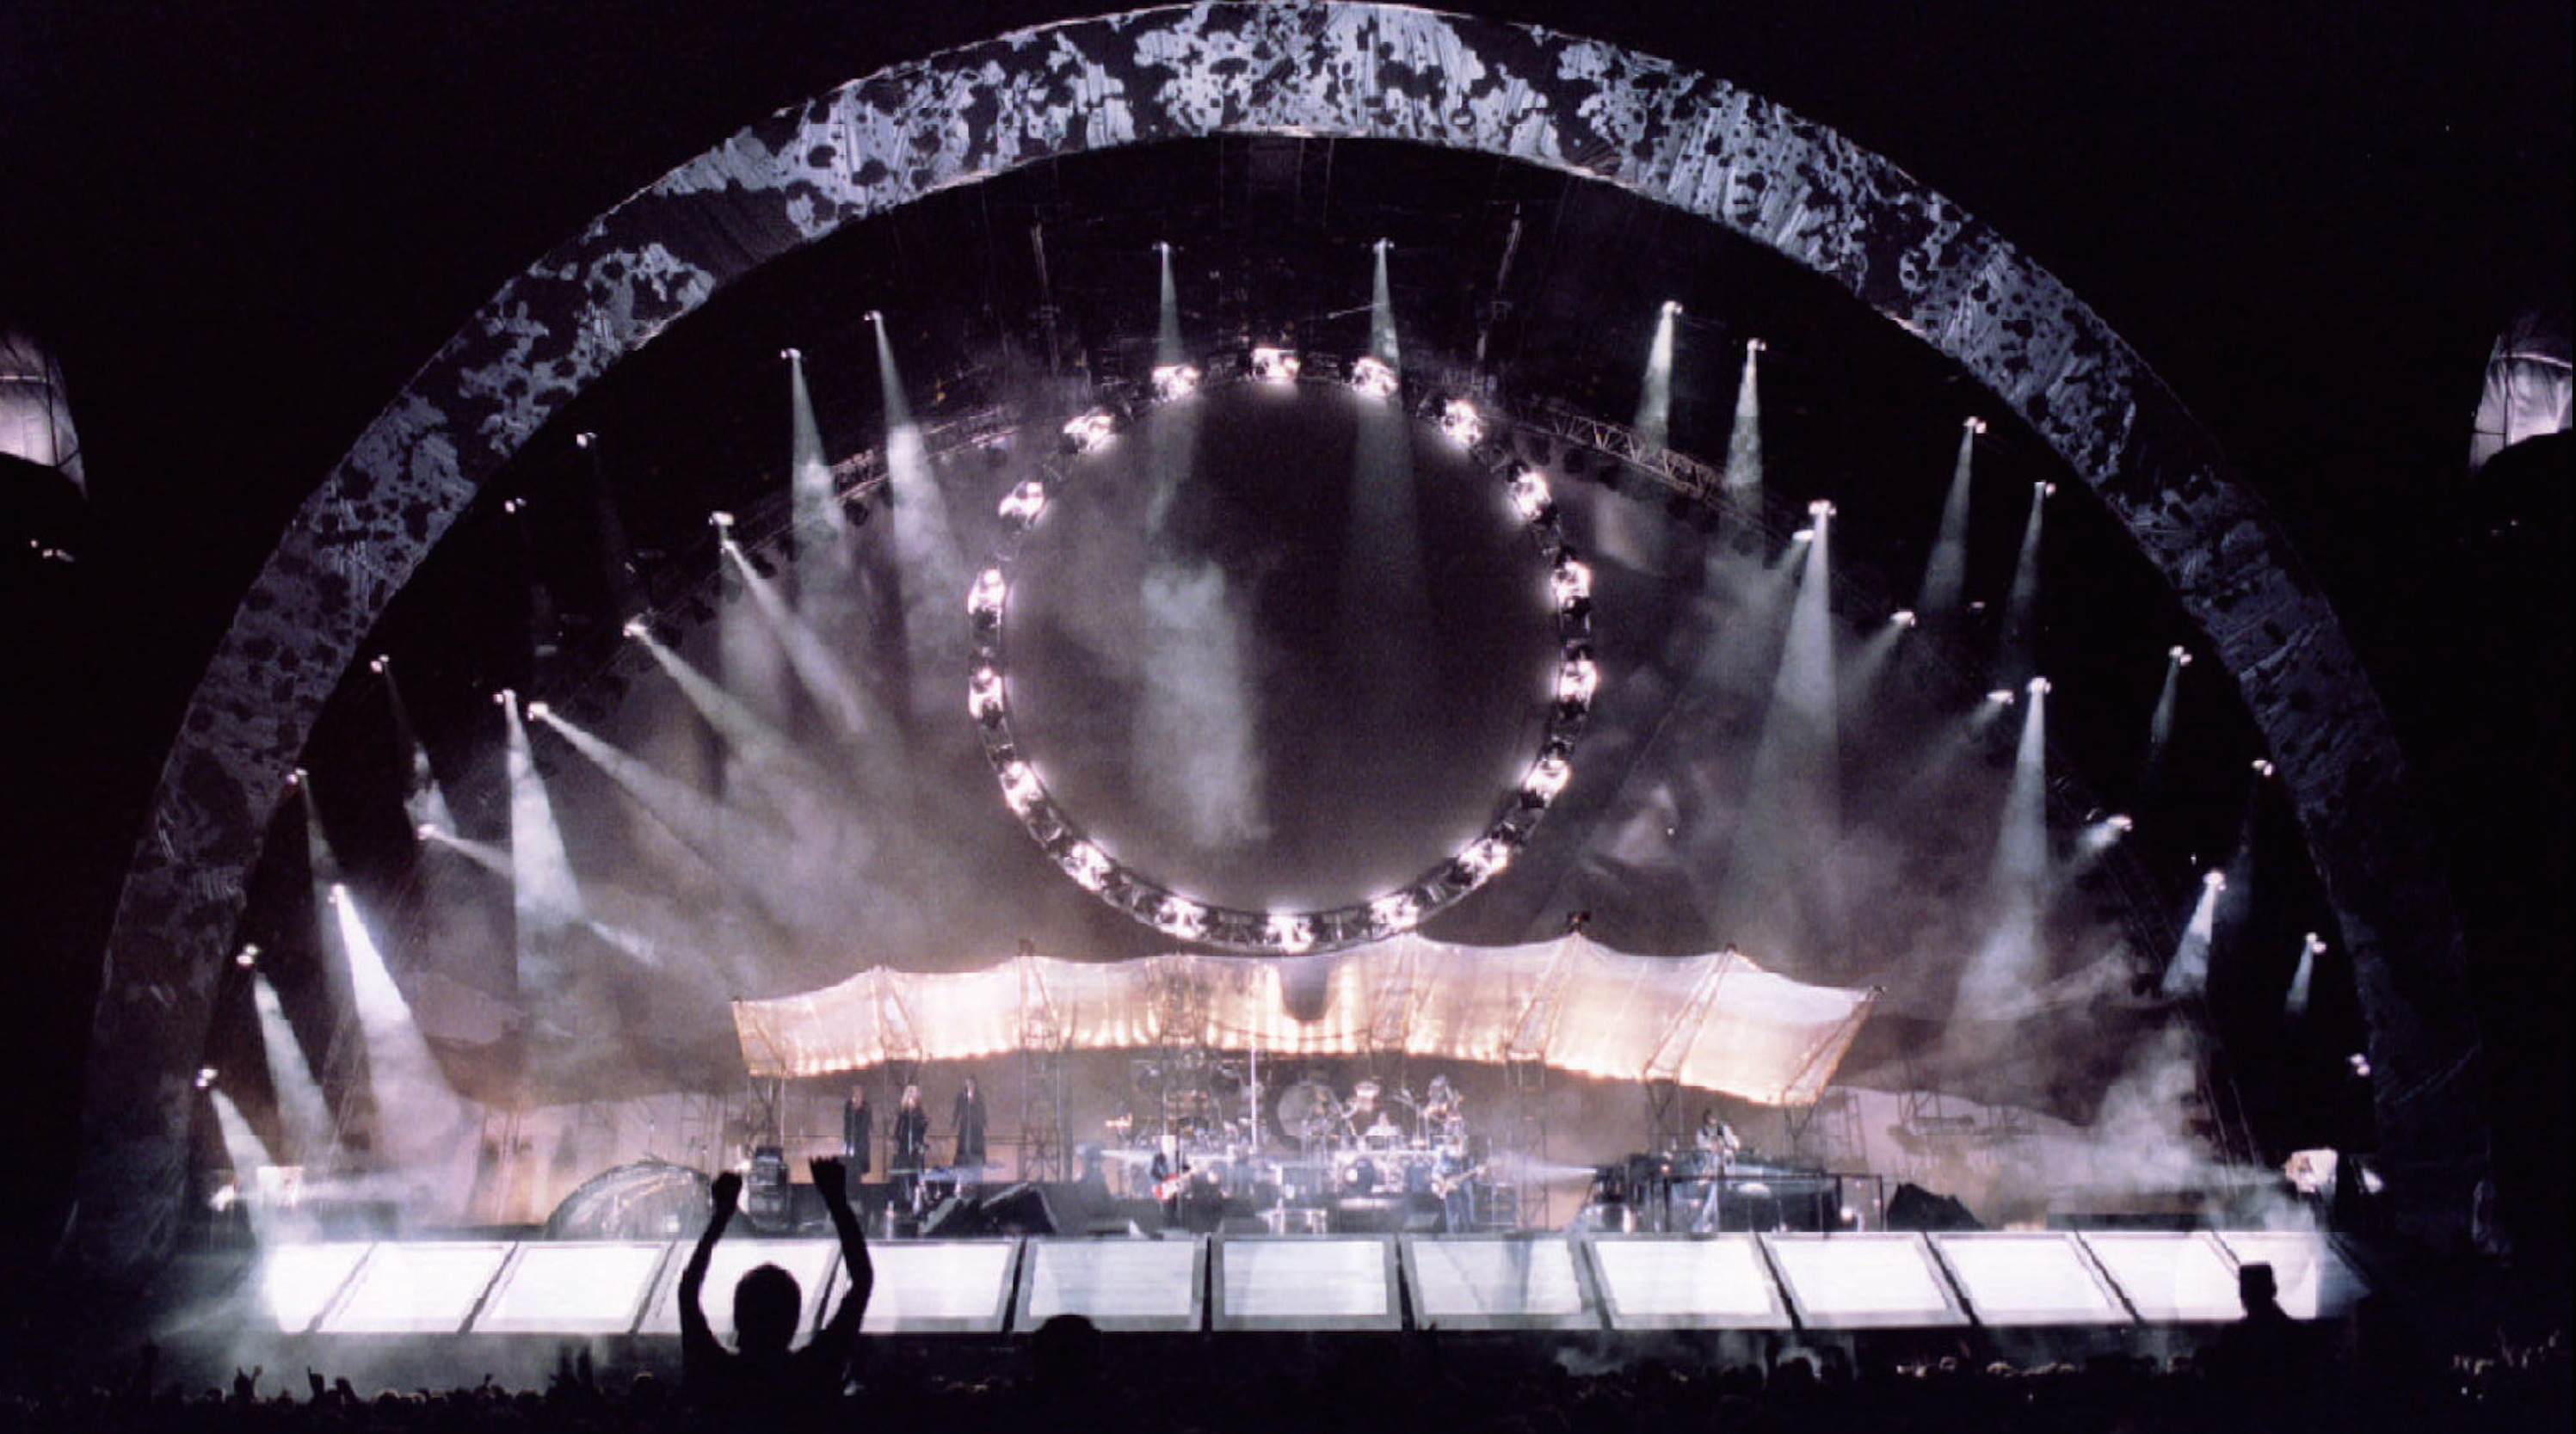 The stage of British pop band Pink Floyd is seen during their concert August 19. Pink Floyd performe..